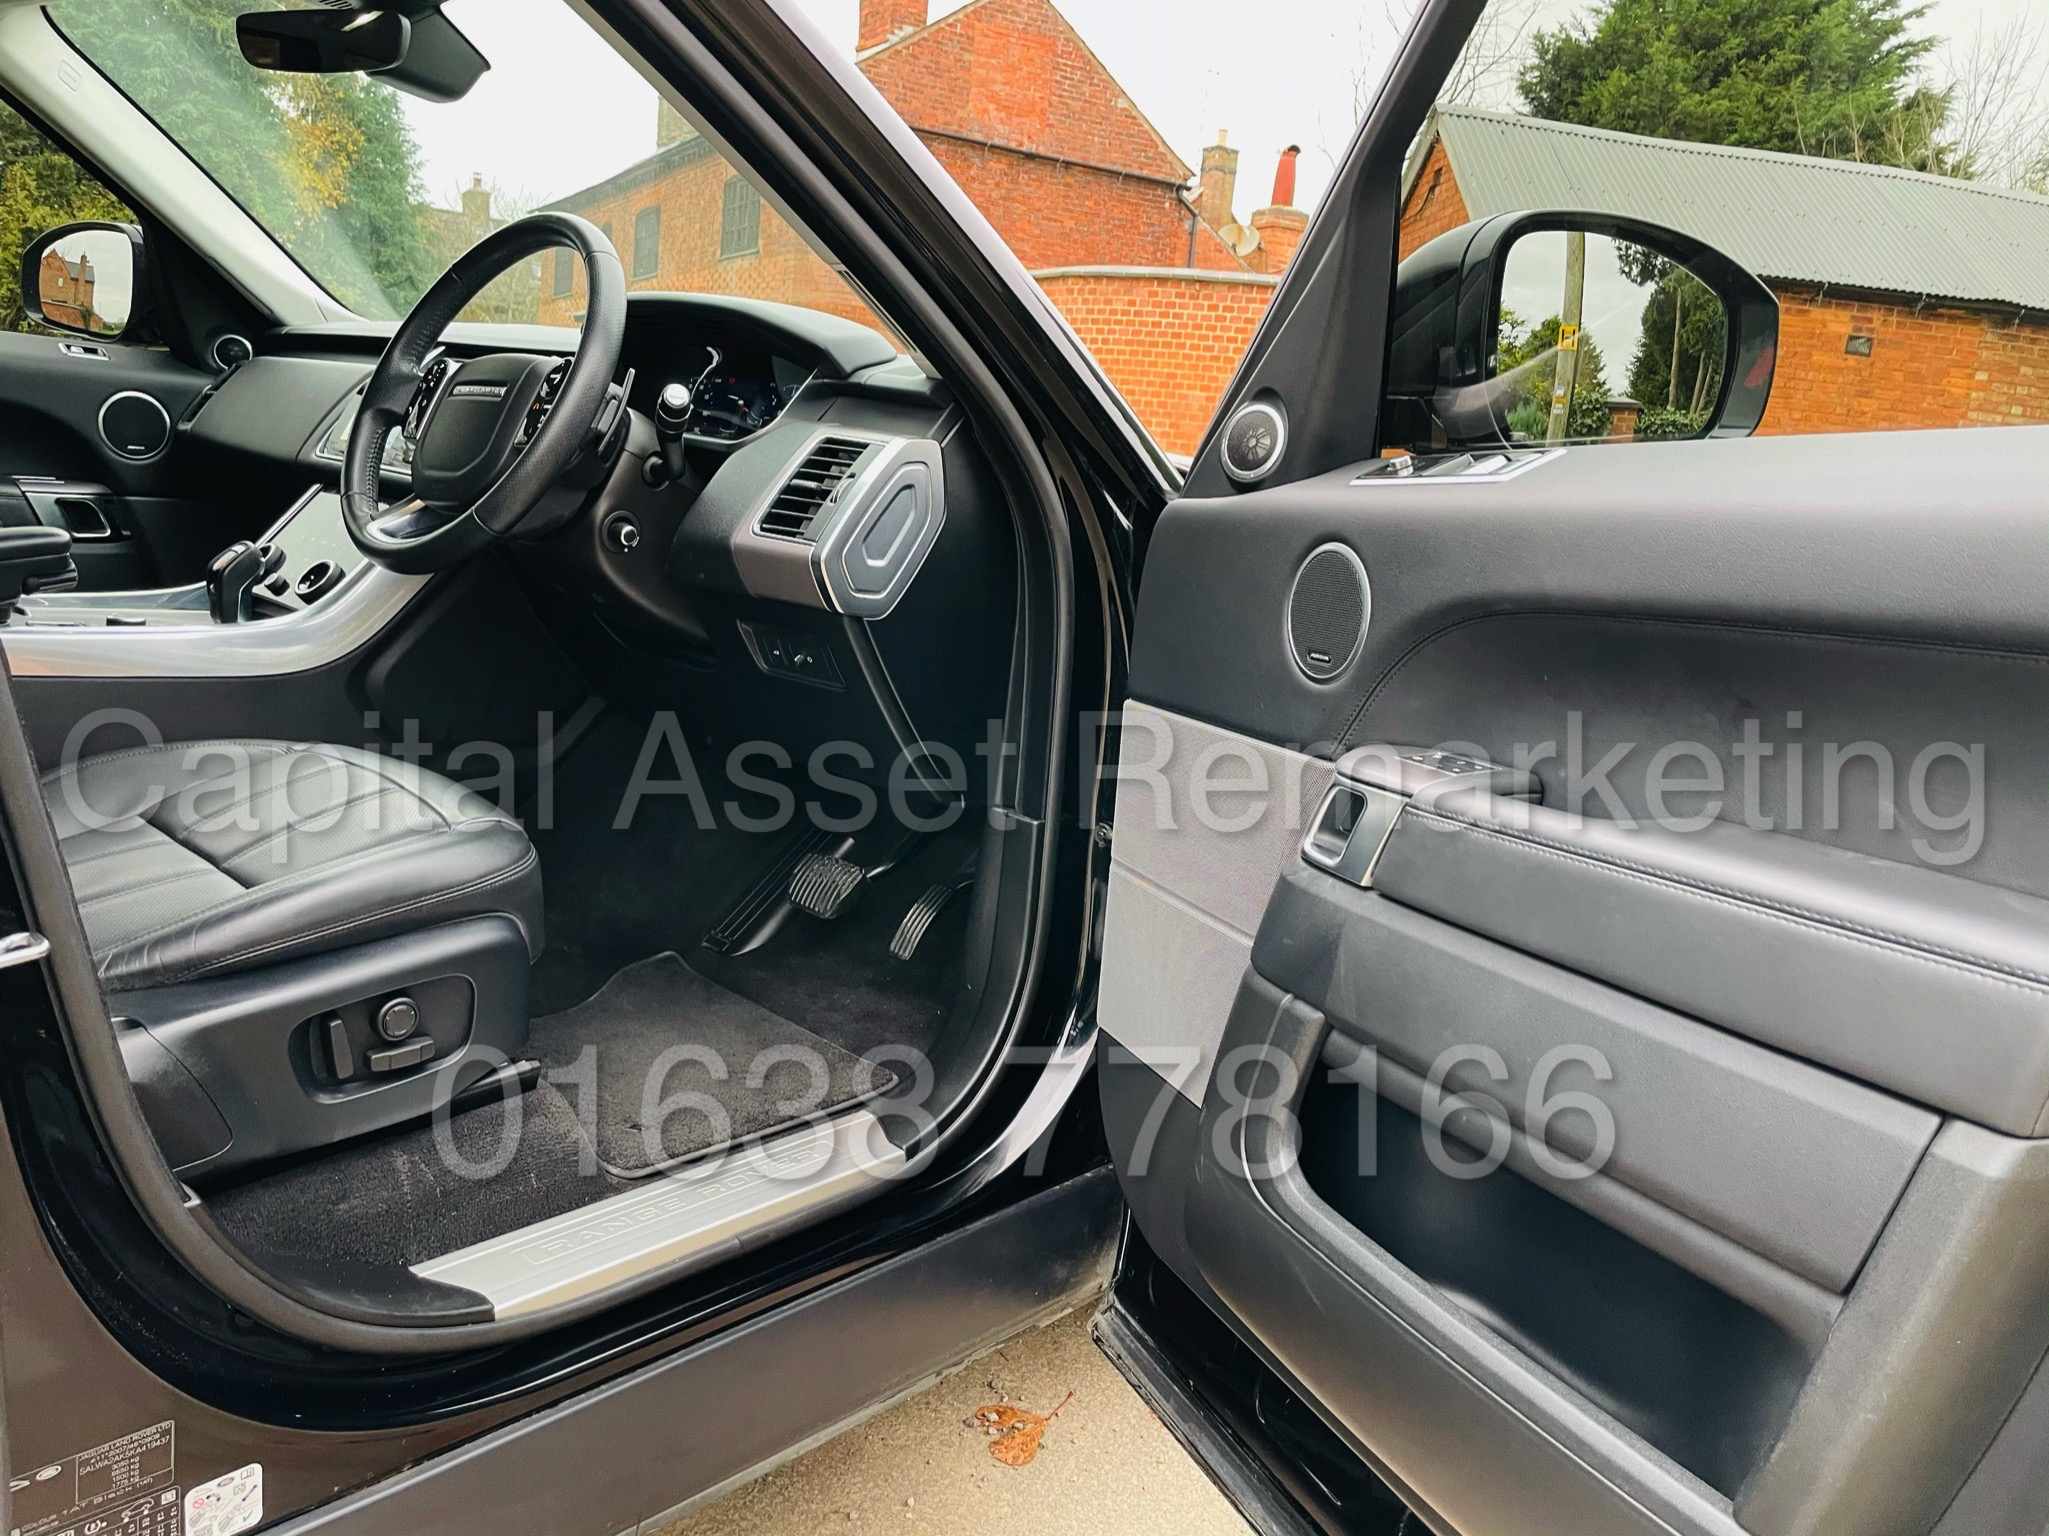 RANGE ROVER SPORT *HSE EDITION* SUV (2019 MODEL) '3.0 SDV6 - 306 BHP - 8 SPEED AUTO' *FULLY LOADED* - Image 36 of 56